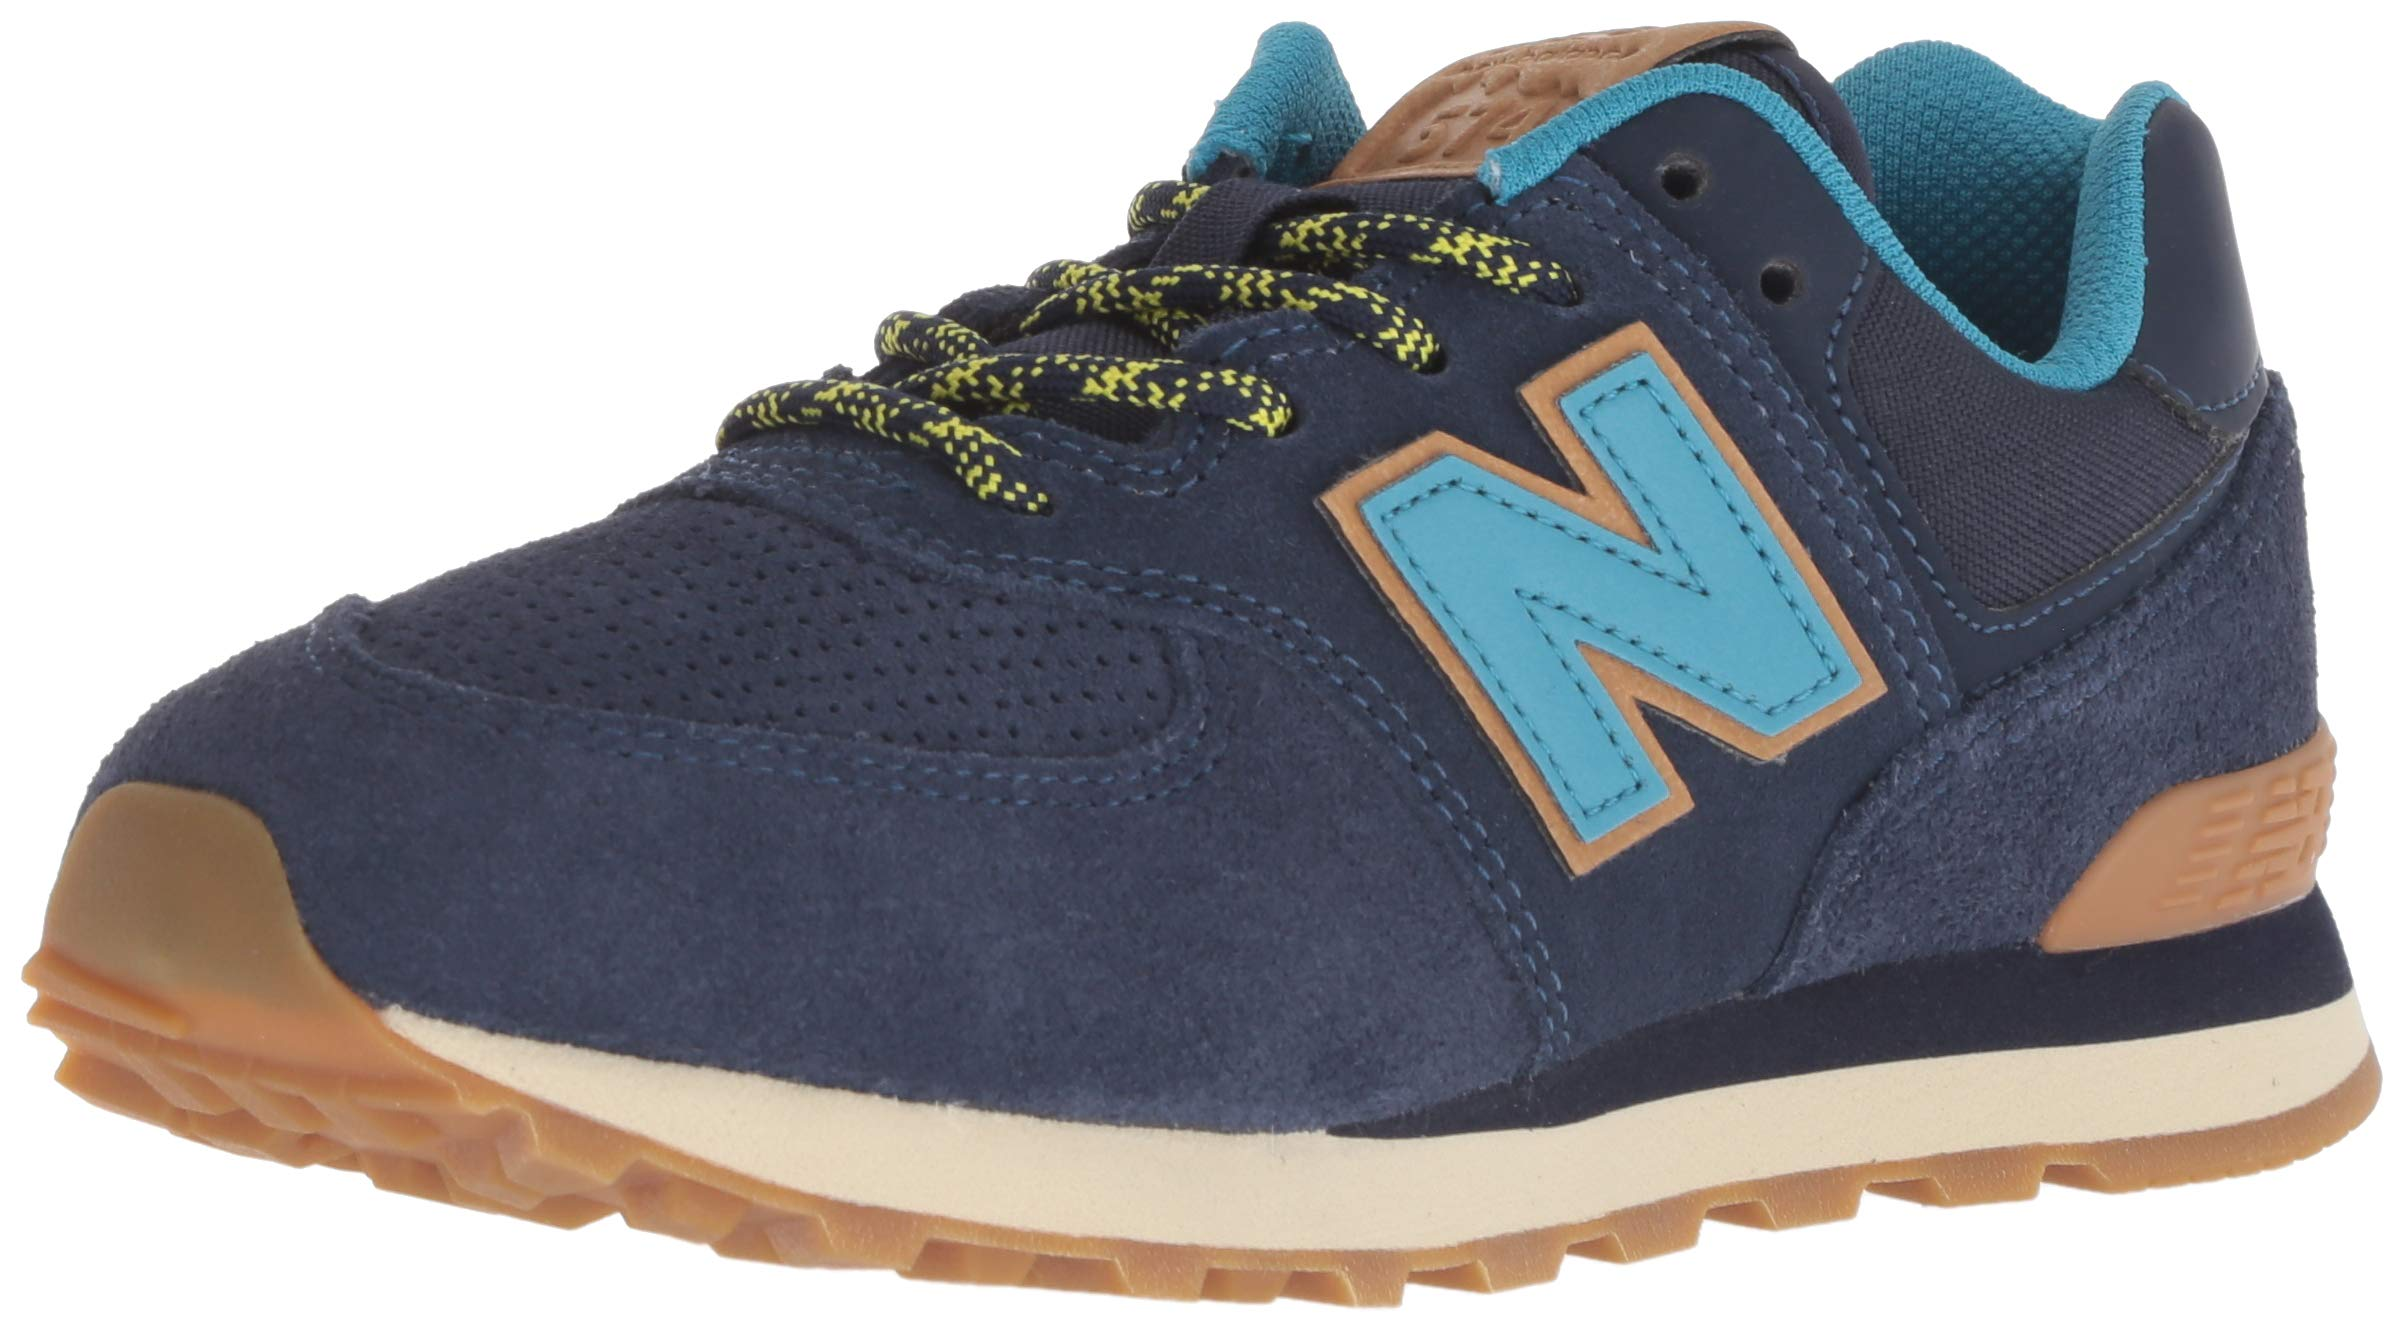 New Balance Boys' Iconic 574 Sneaker Pigment/Cadet 10 M US Toddler